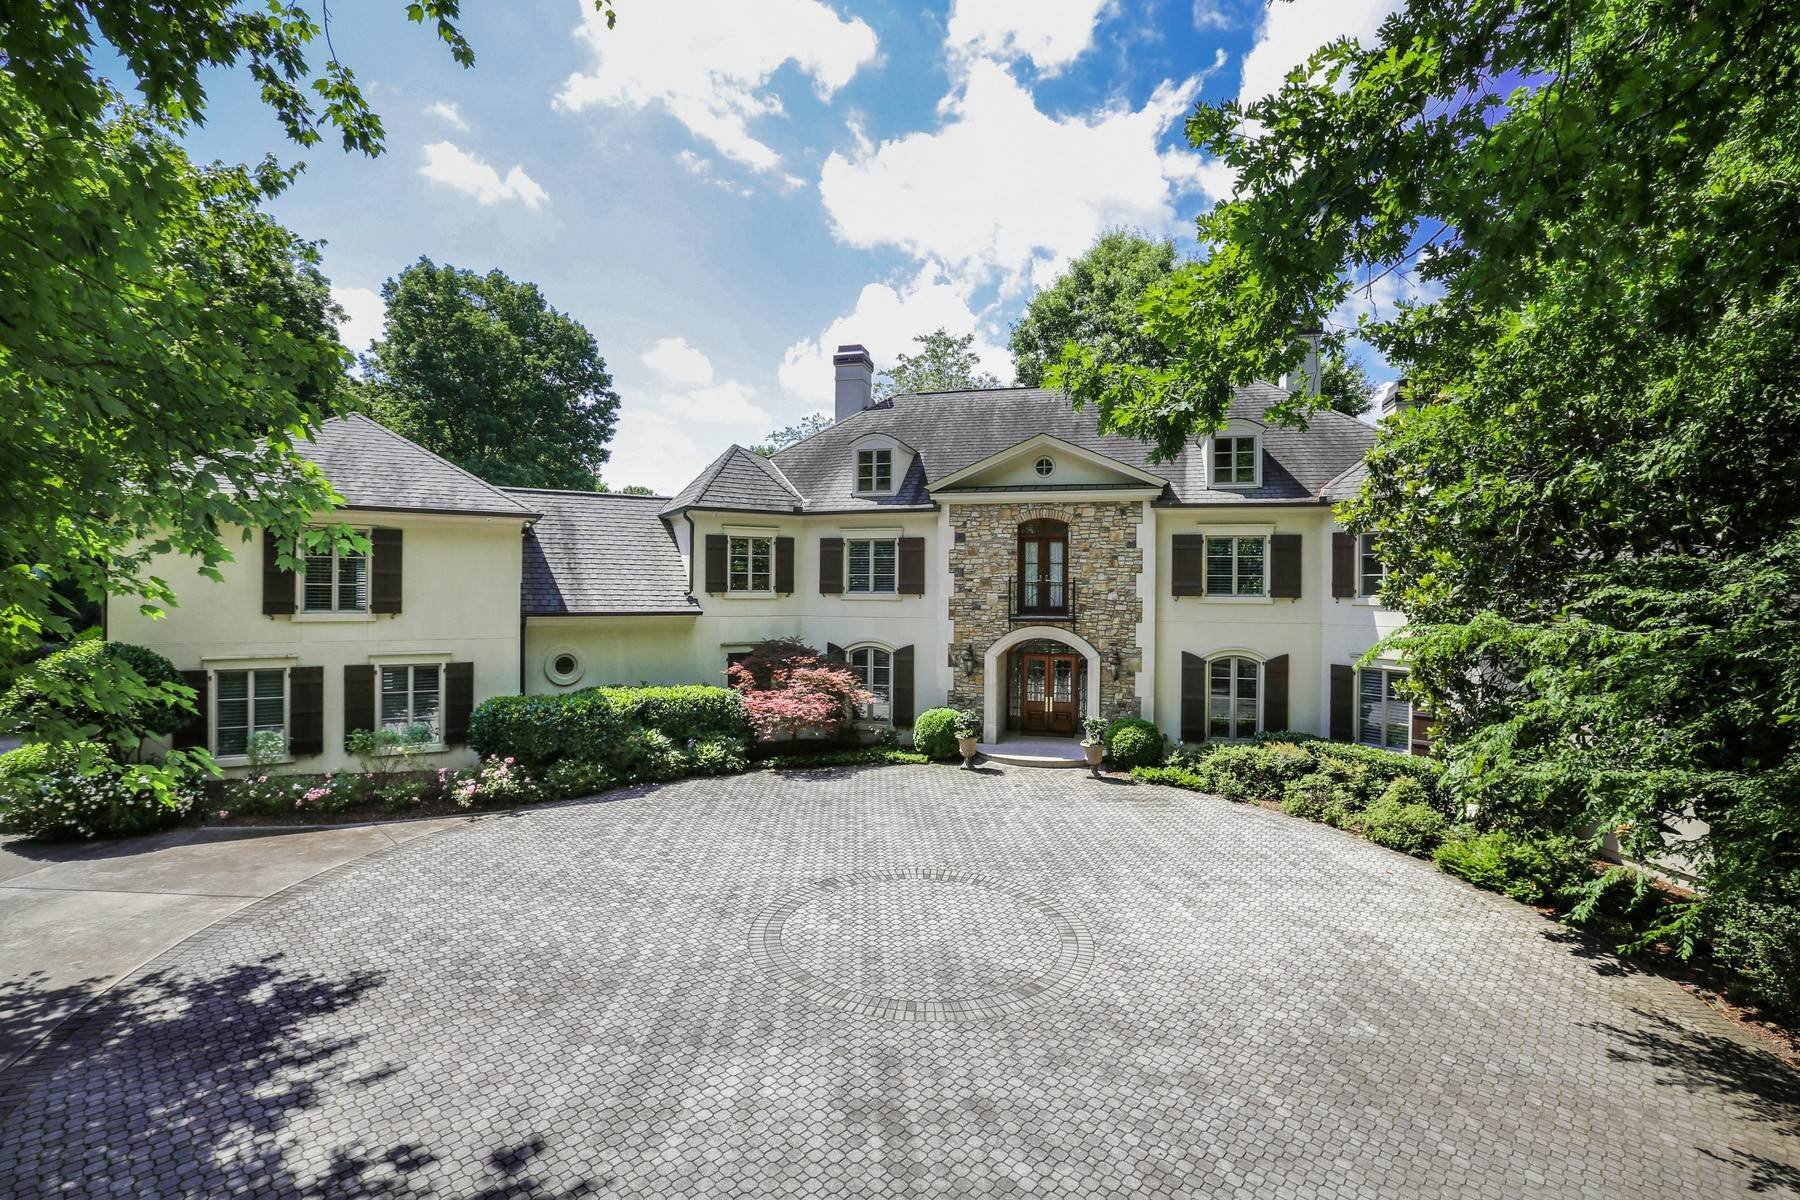 Single Family Homes for Active at Custom Estate Sits on 2.6+/- Acres in Sandy Springs 1370 Indian Trail Sandy Springs, Georgia 30327 United States